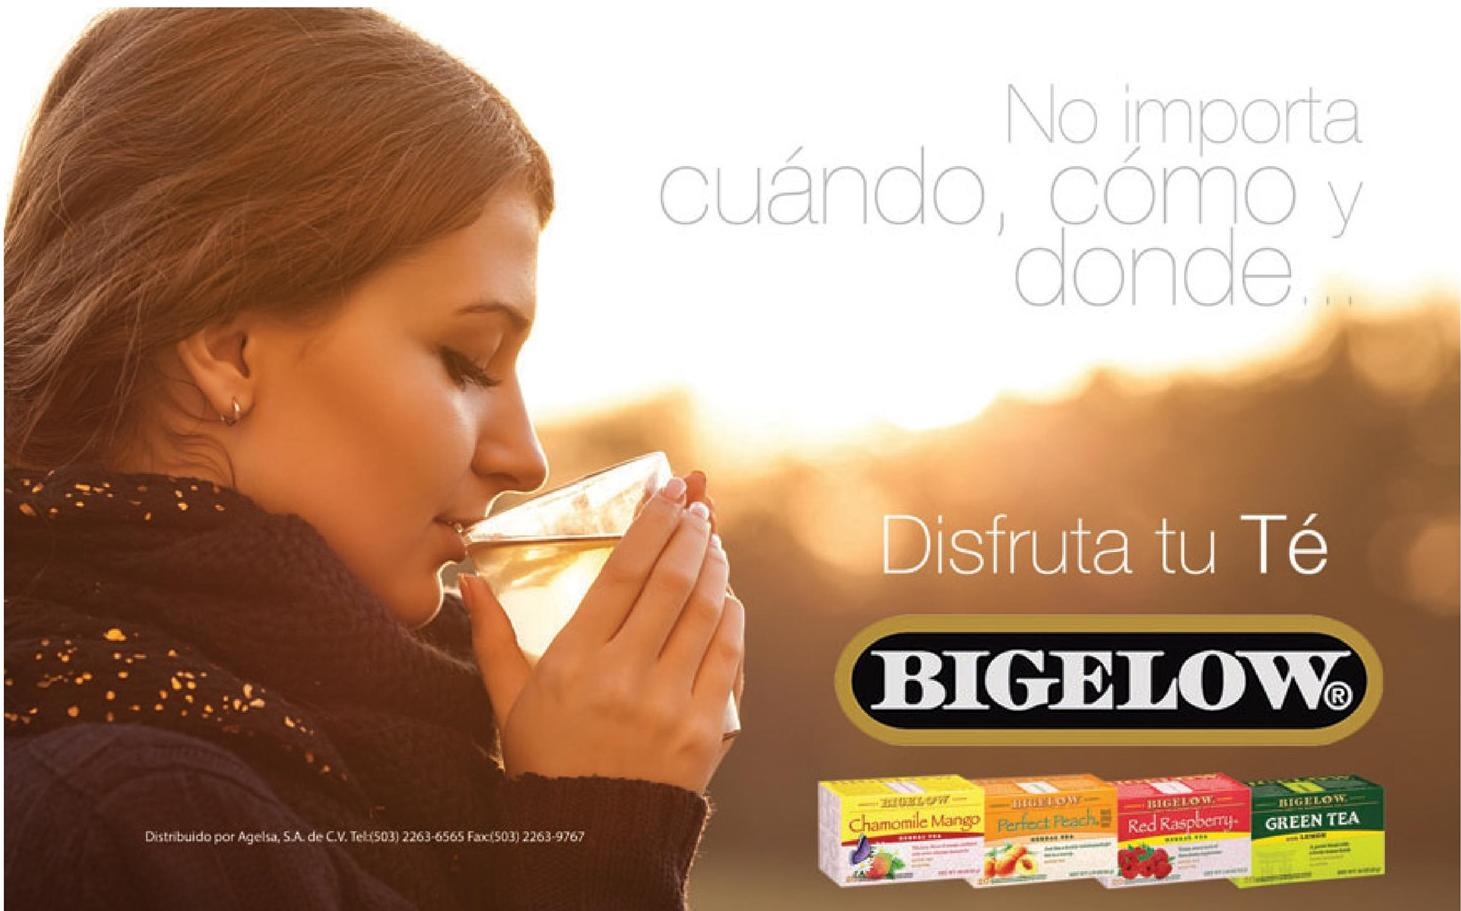 BIGELOW tea flavors for all time